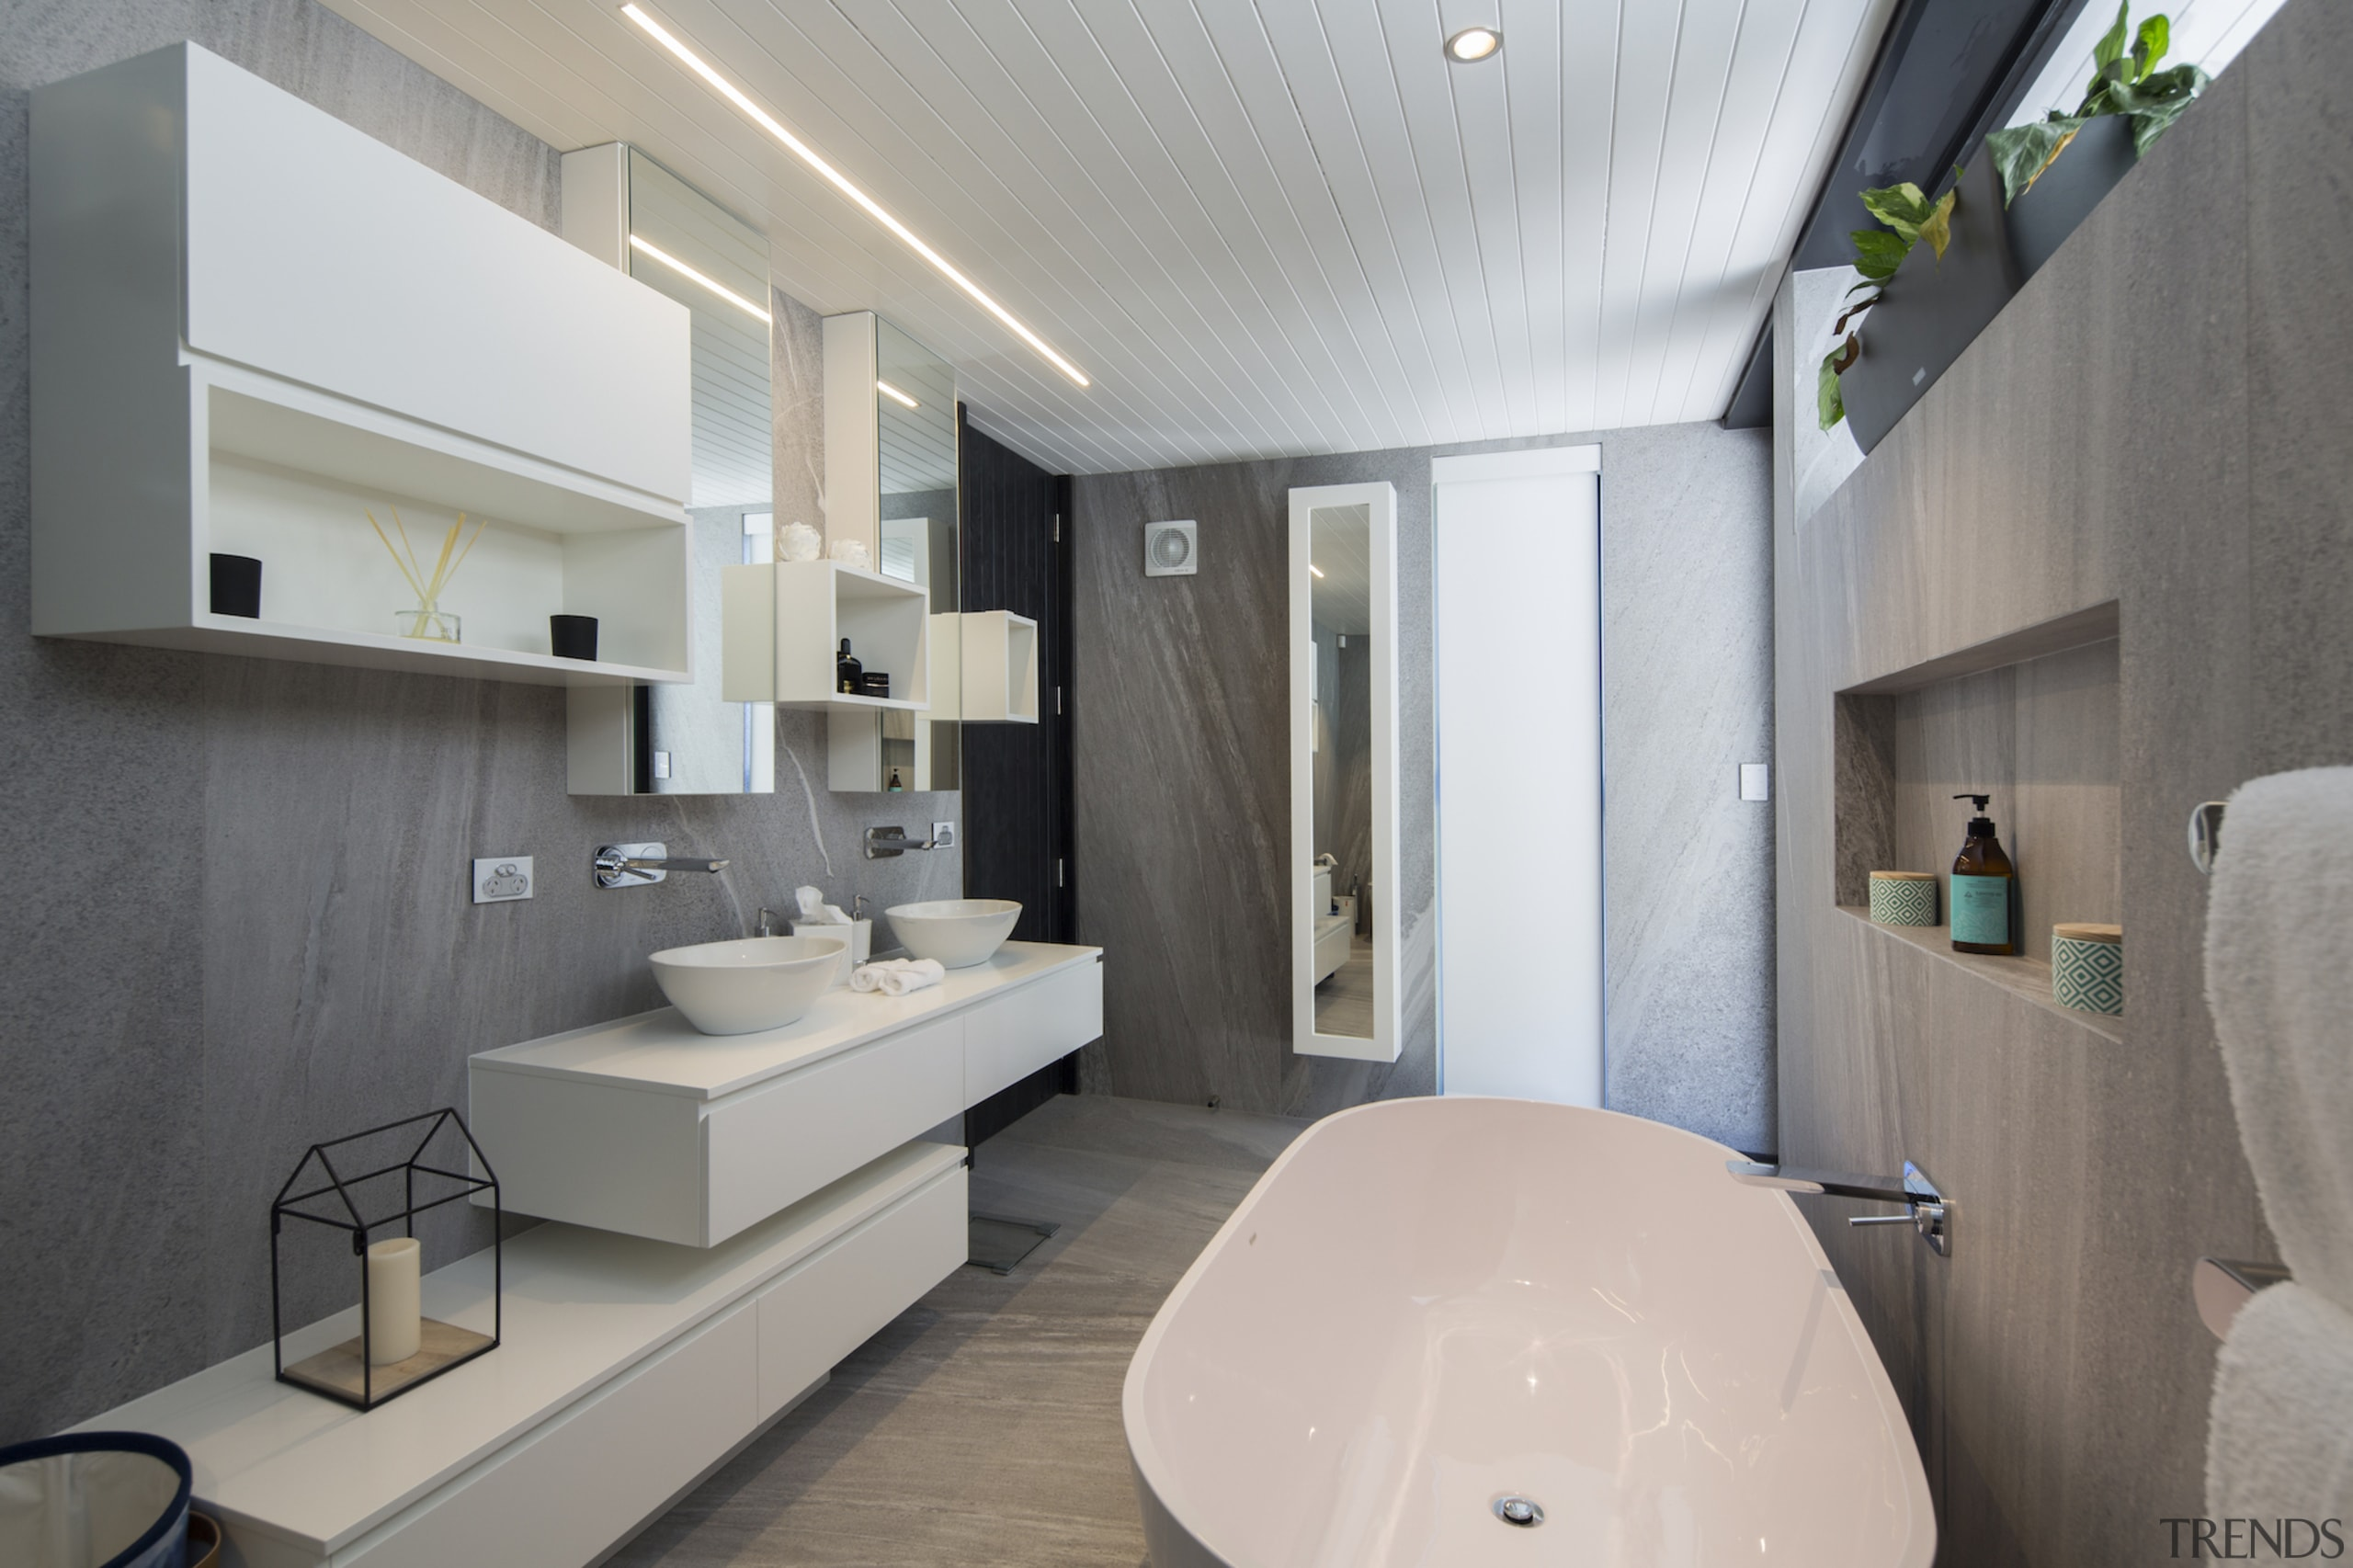 Well connected in Queenstown - architecture | bathroom architecture, bathroom, interior design, real estate, room, gray